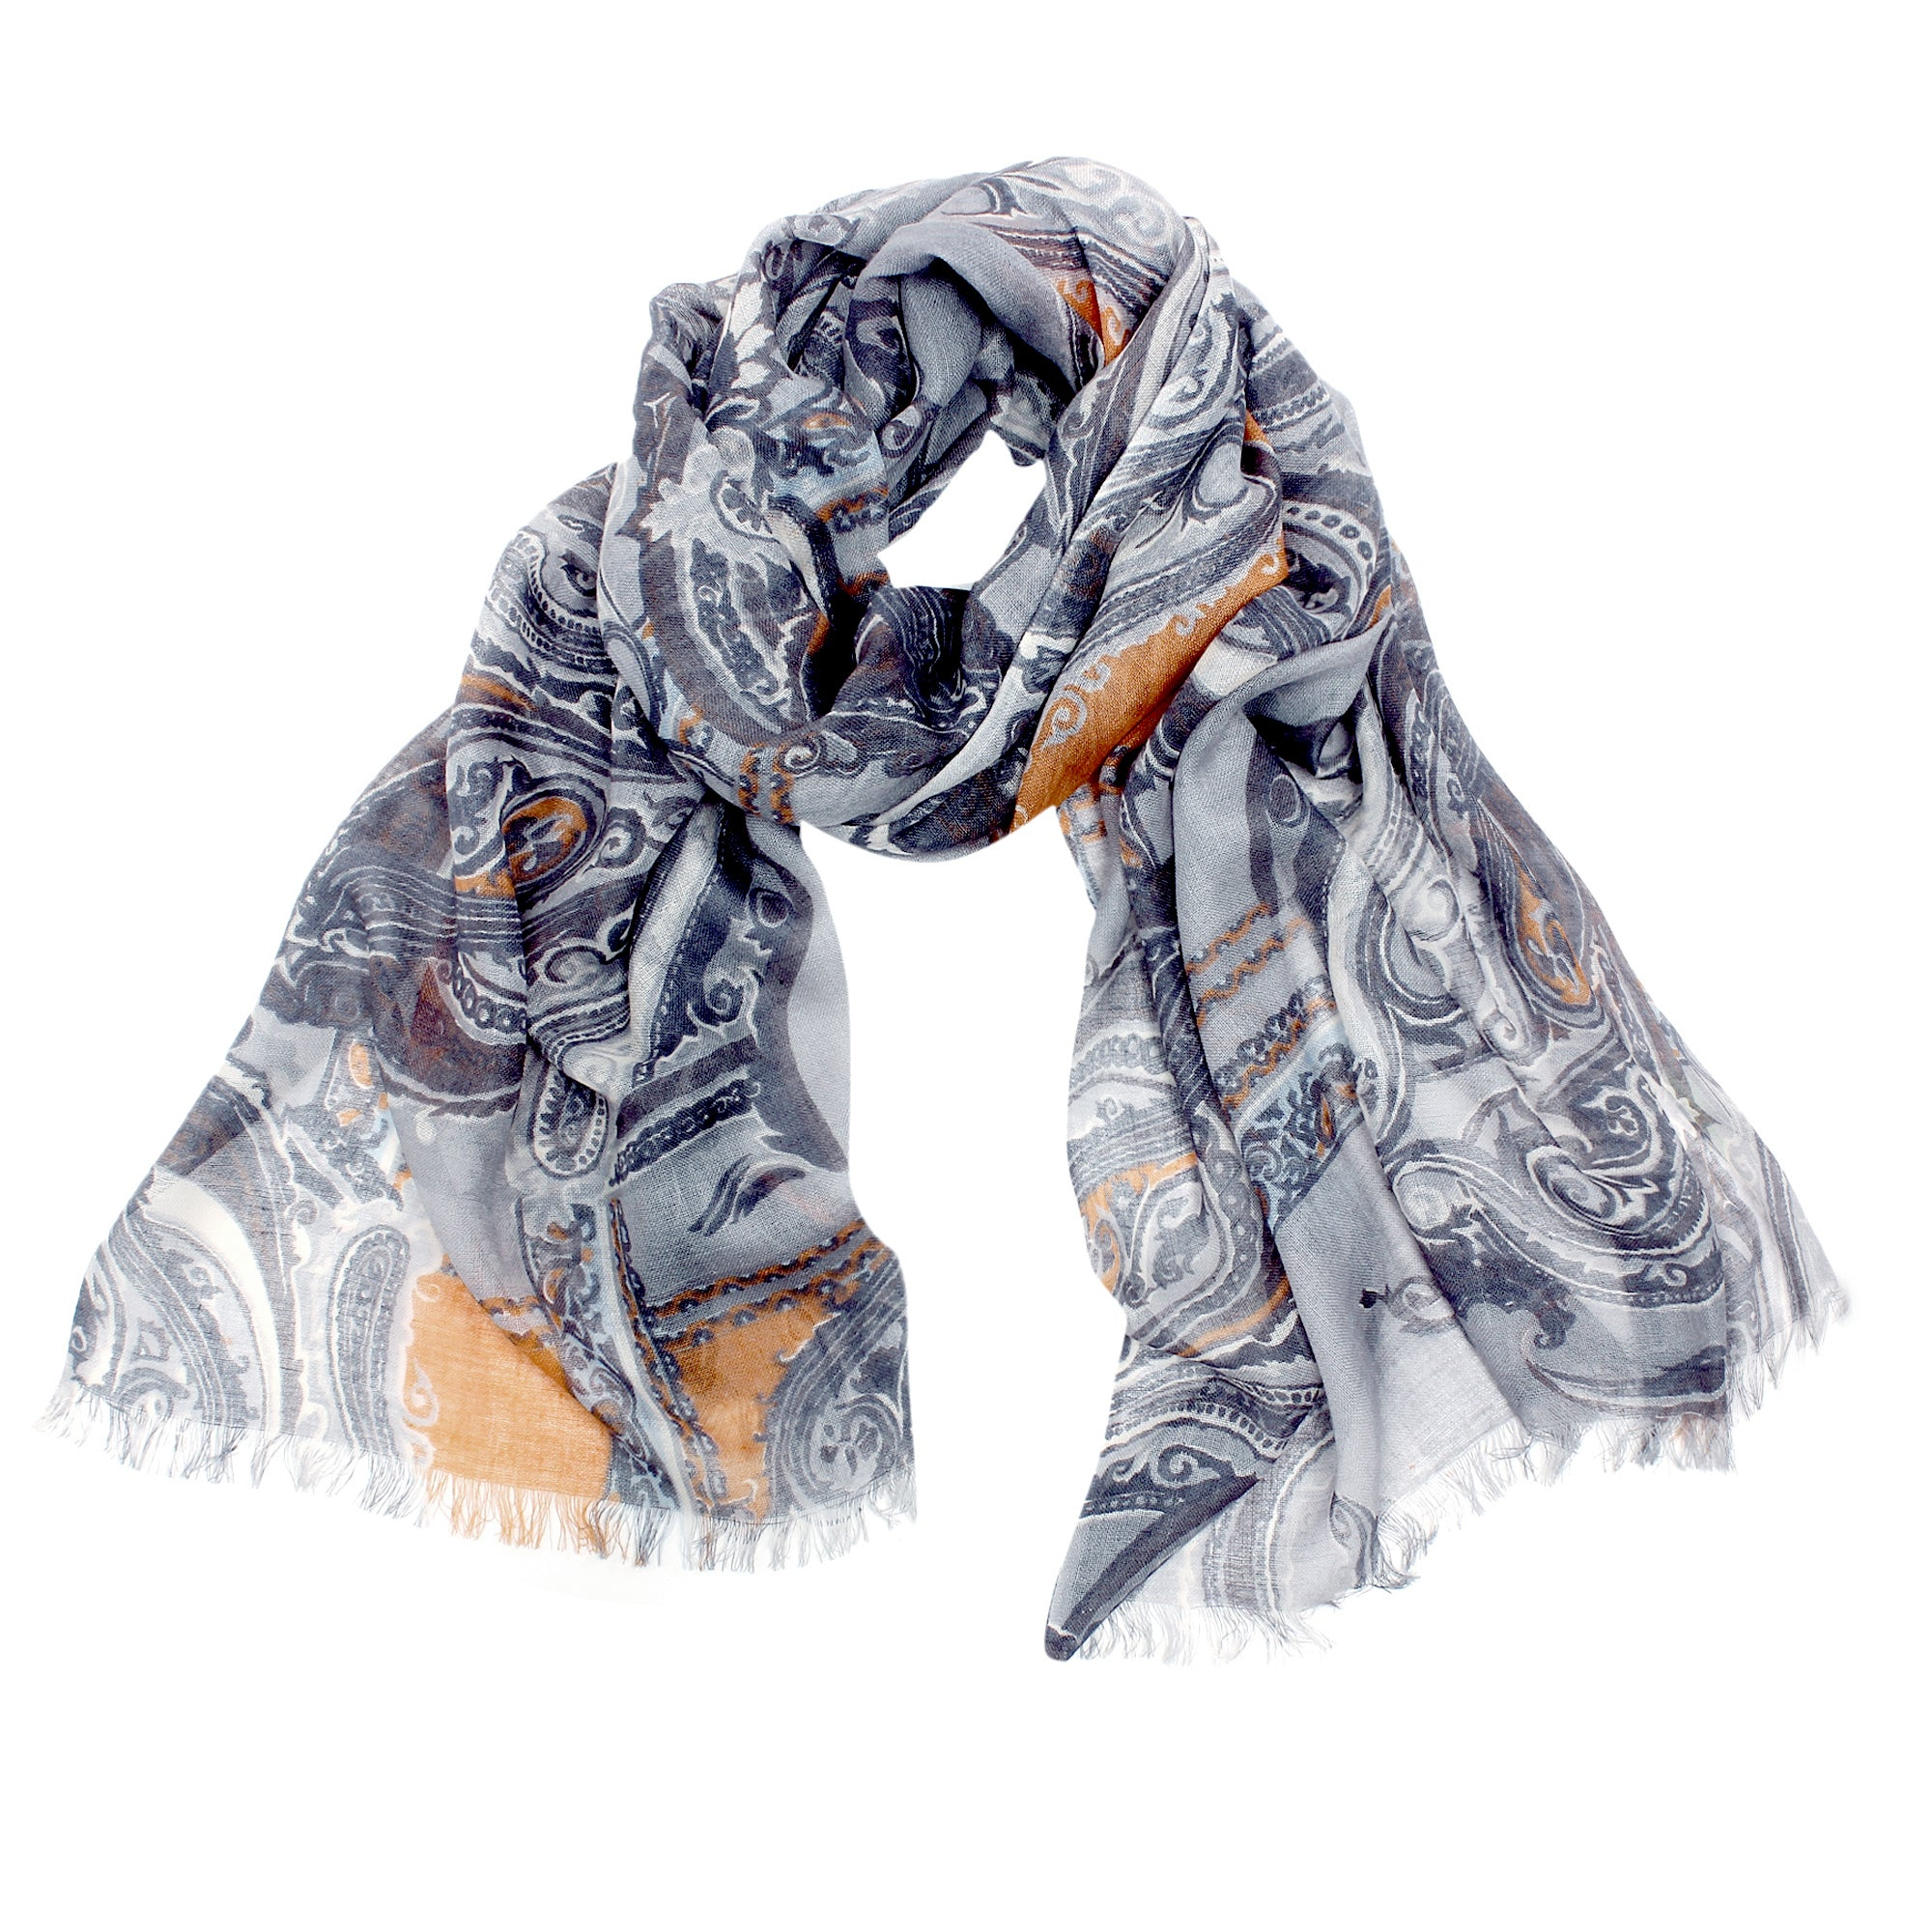 Pashma Paisley Grey scarf crafted in Silk Cashmere Kashgar